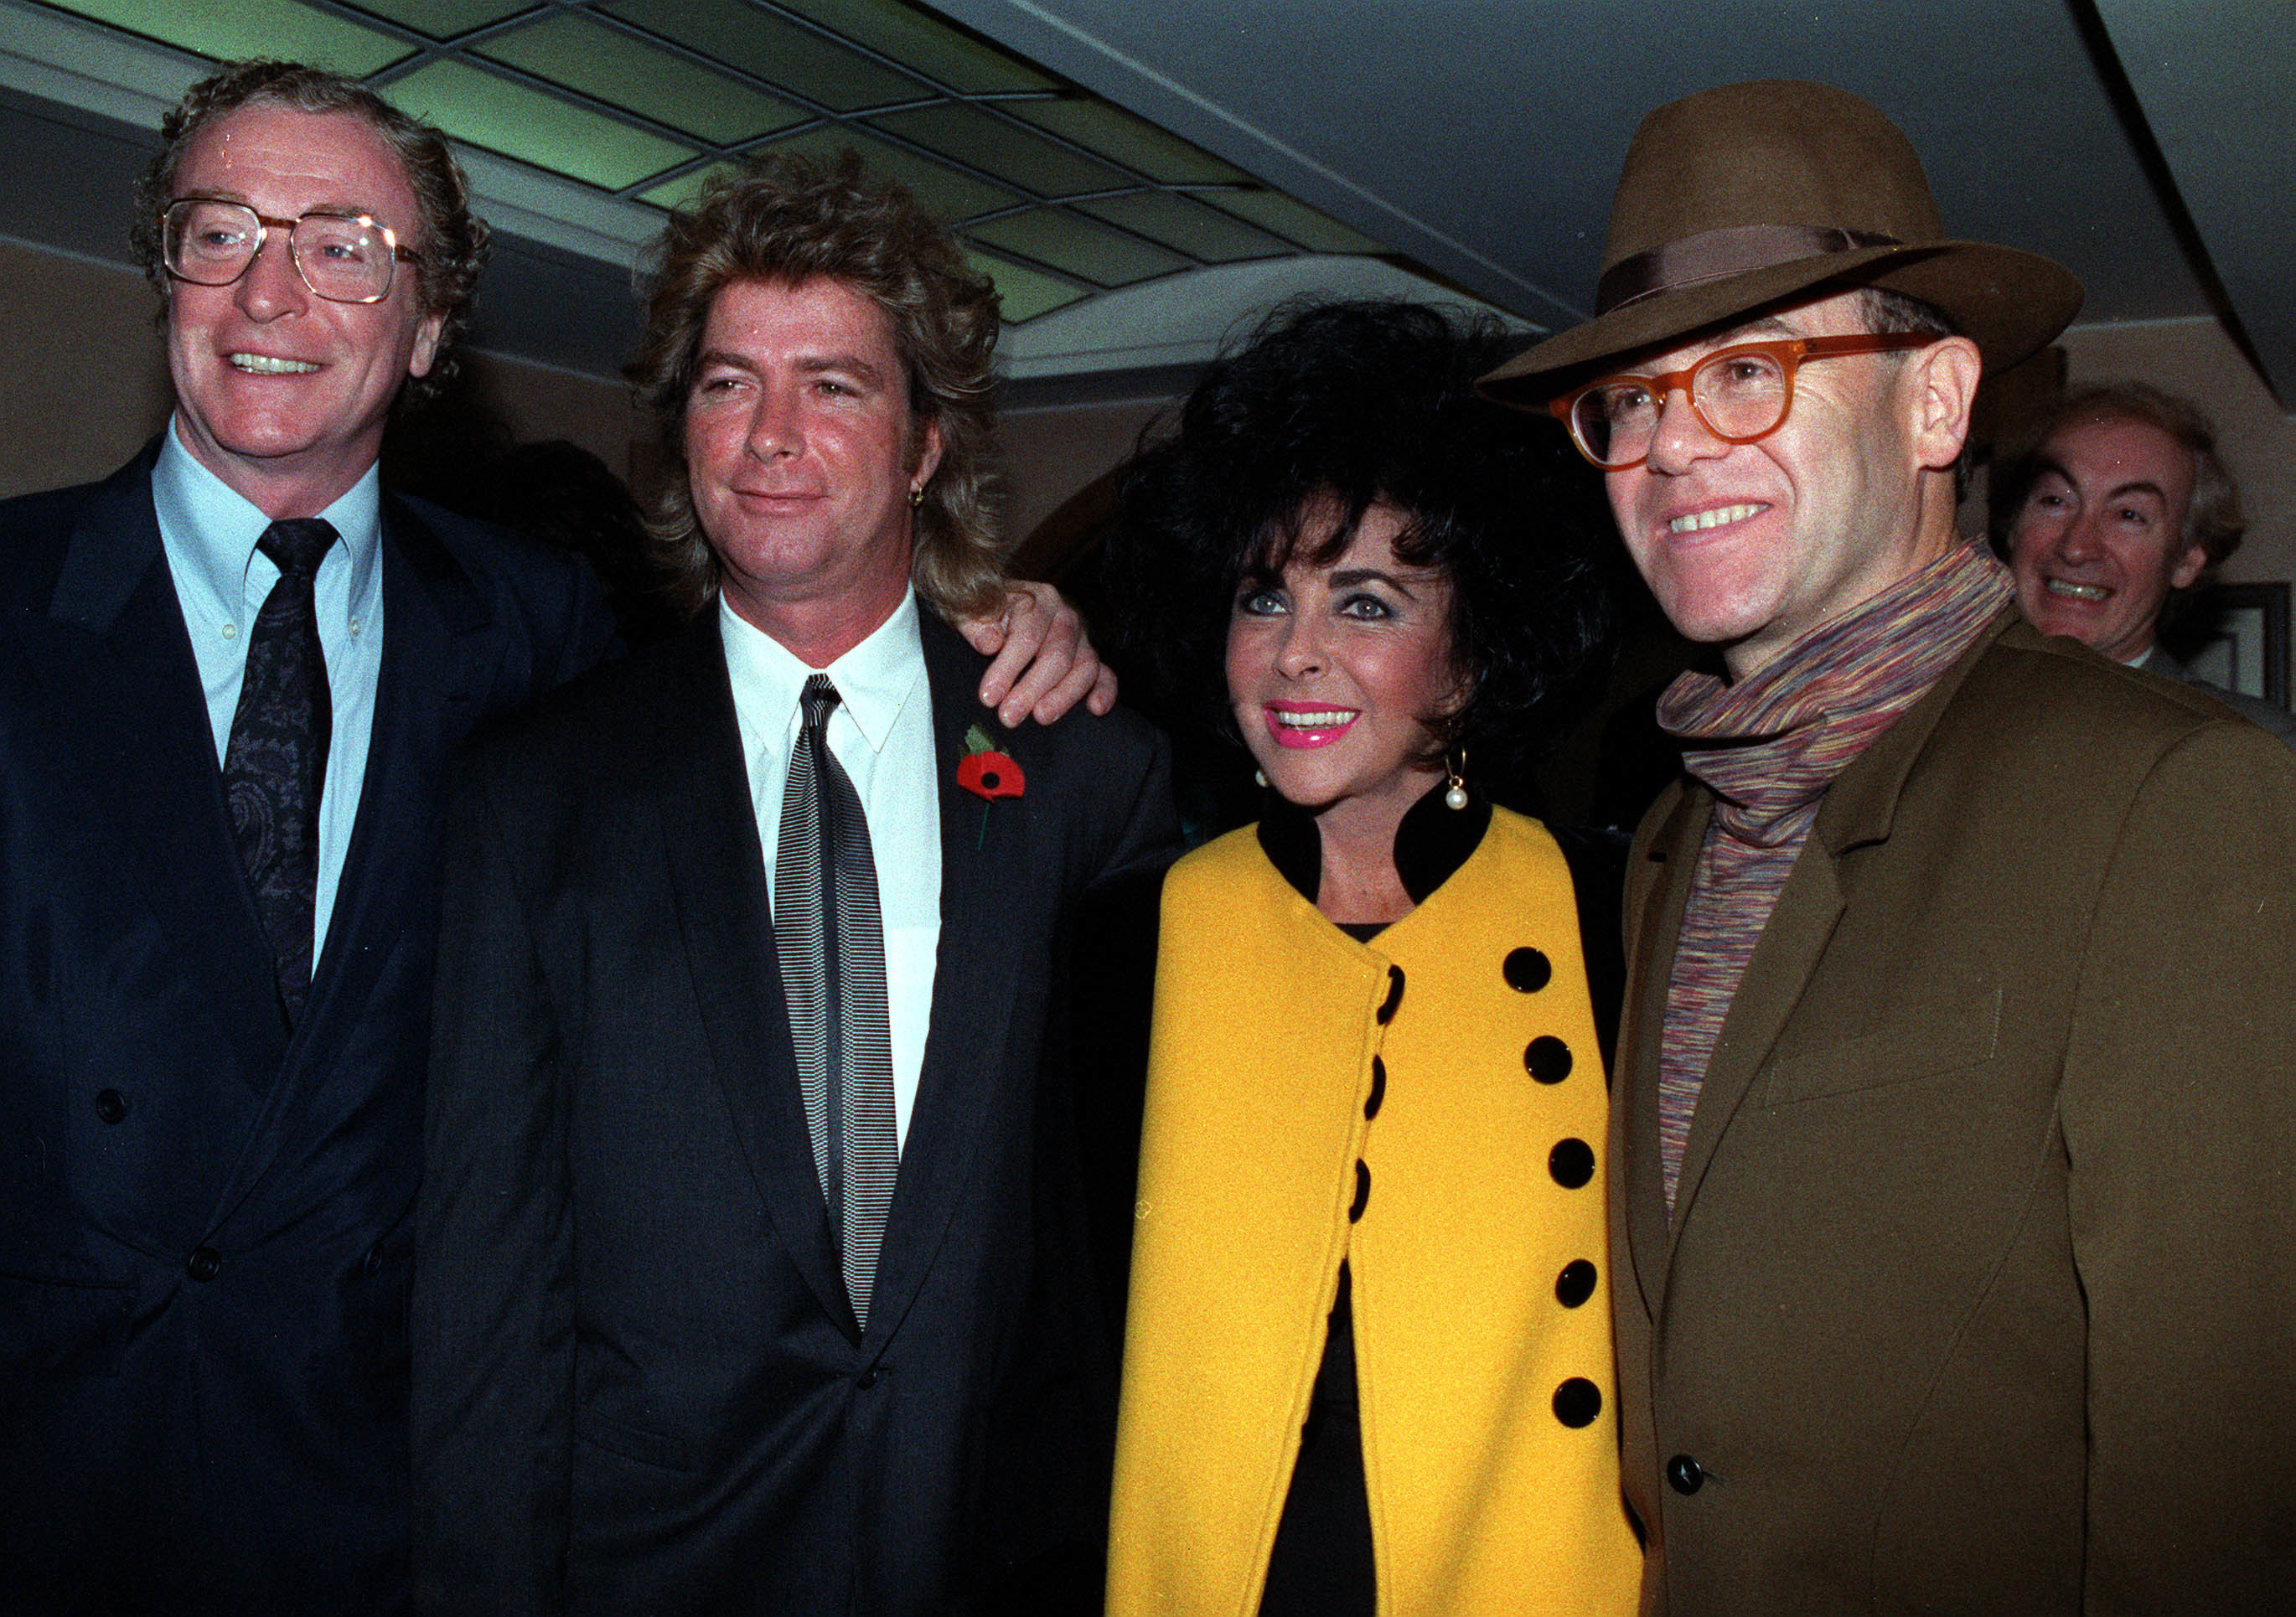 1991: Newly married actress Elizabeth Taylor with her husband, Larry Fortensky (2nd l), actor Michael Caine and pop star Elton John (r) at a charity reopening of the refurbished Mirabelle restaurant in London's Mayfair.